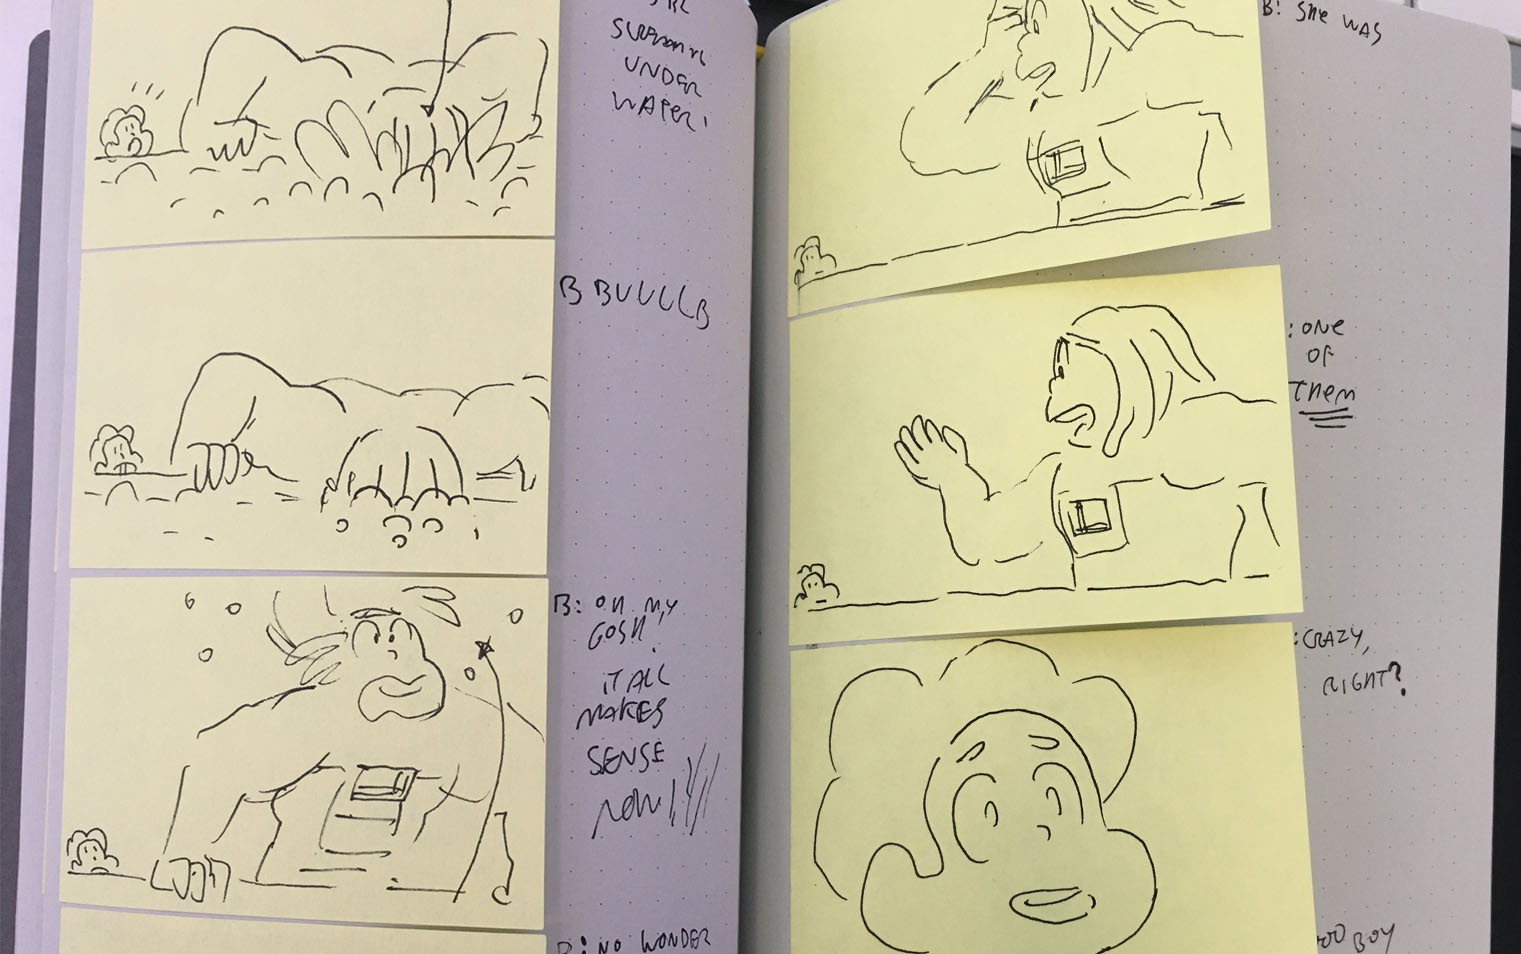 Sketches for Steven Universe. Credit: Cartoon Network